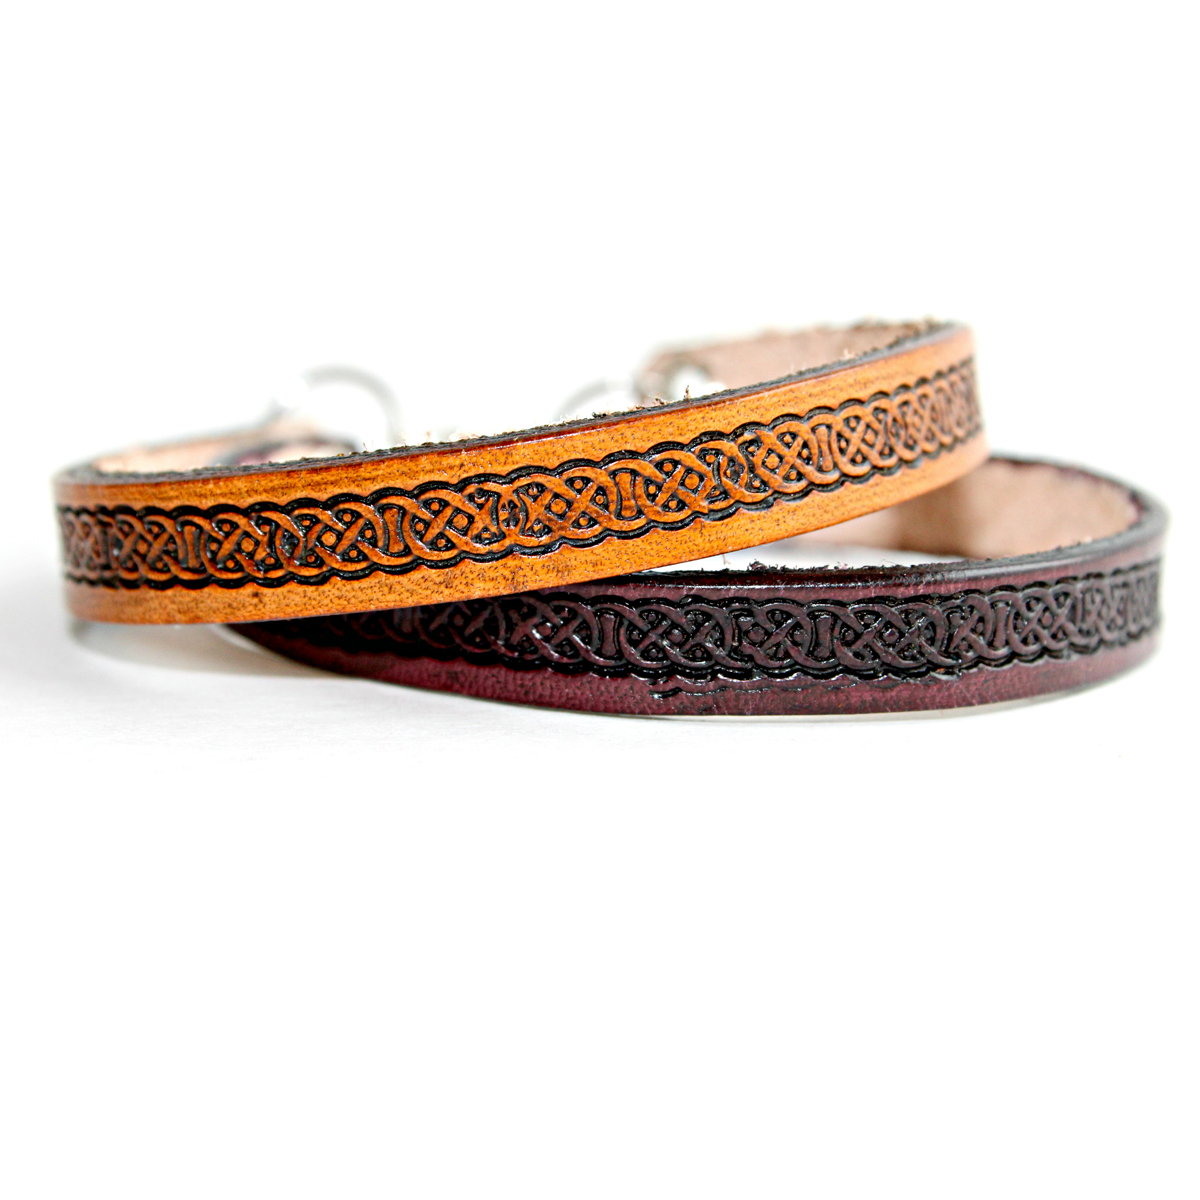 celtic-thin-leather-bracelet-the-leather-smithy_11